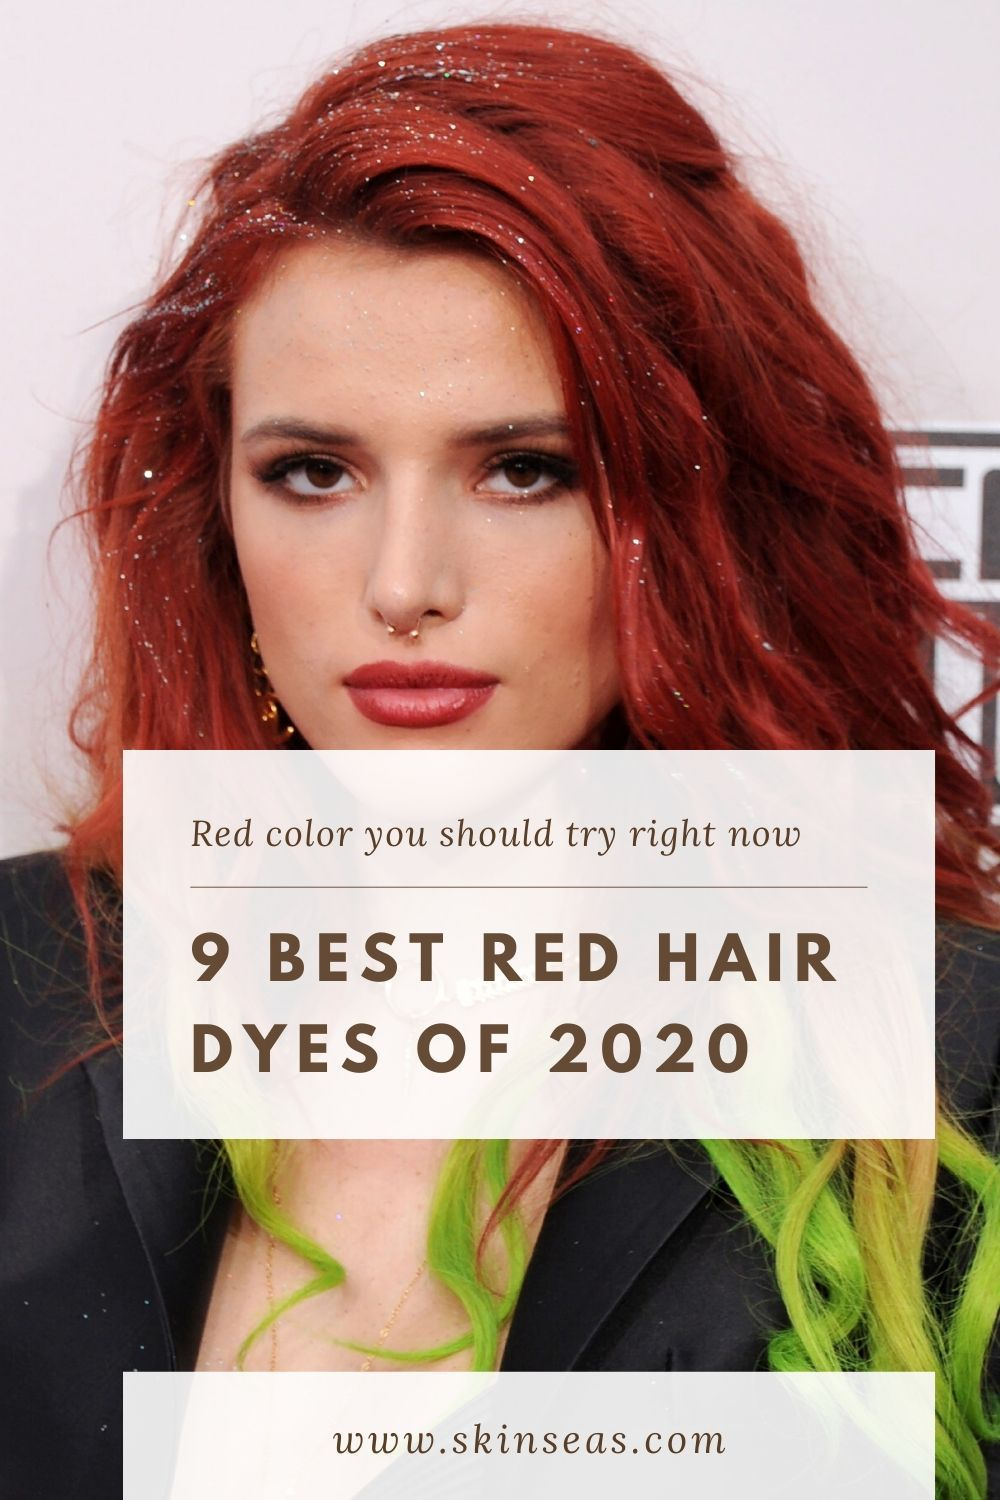 Best Red Hair Dyes Your Should Try In 2020 Best Red Hair Dye Dyed Red Hair Red Hair